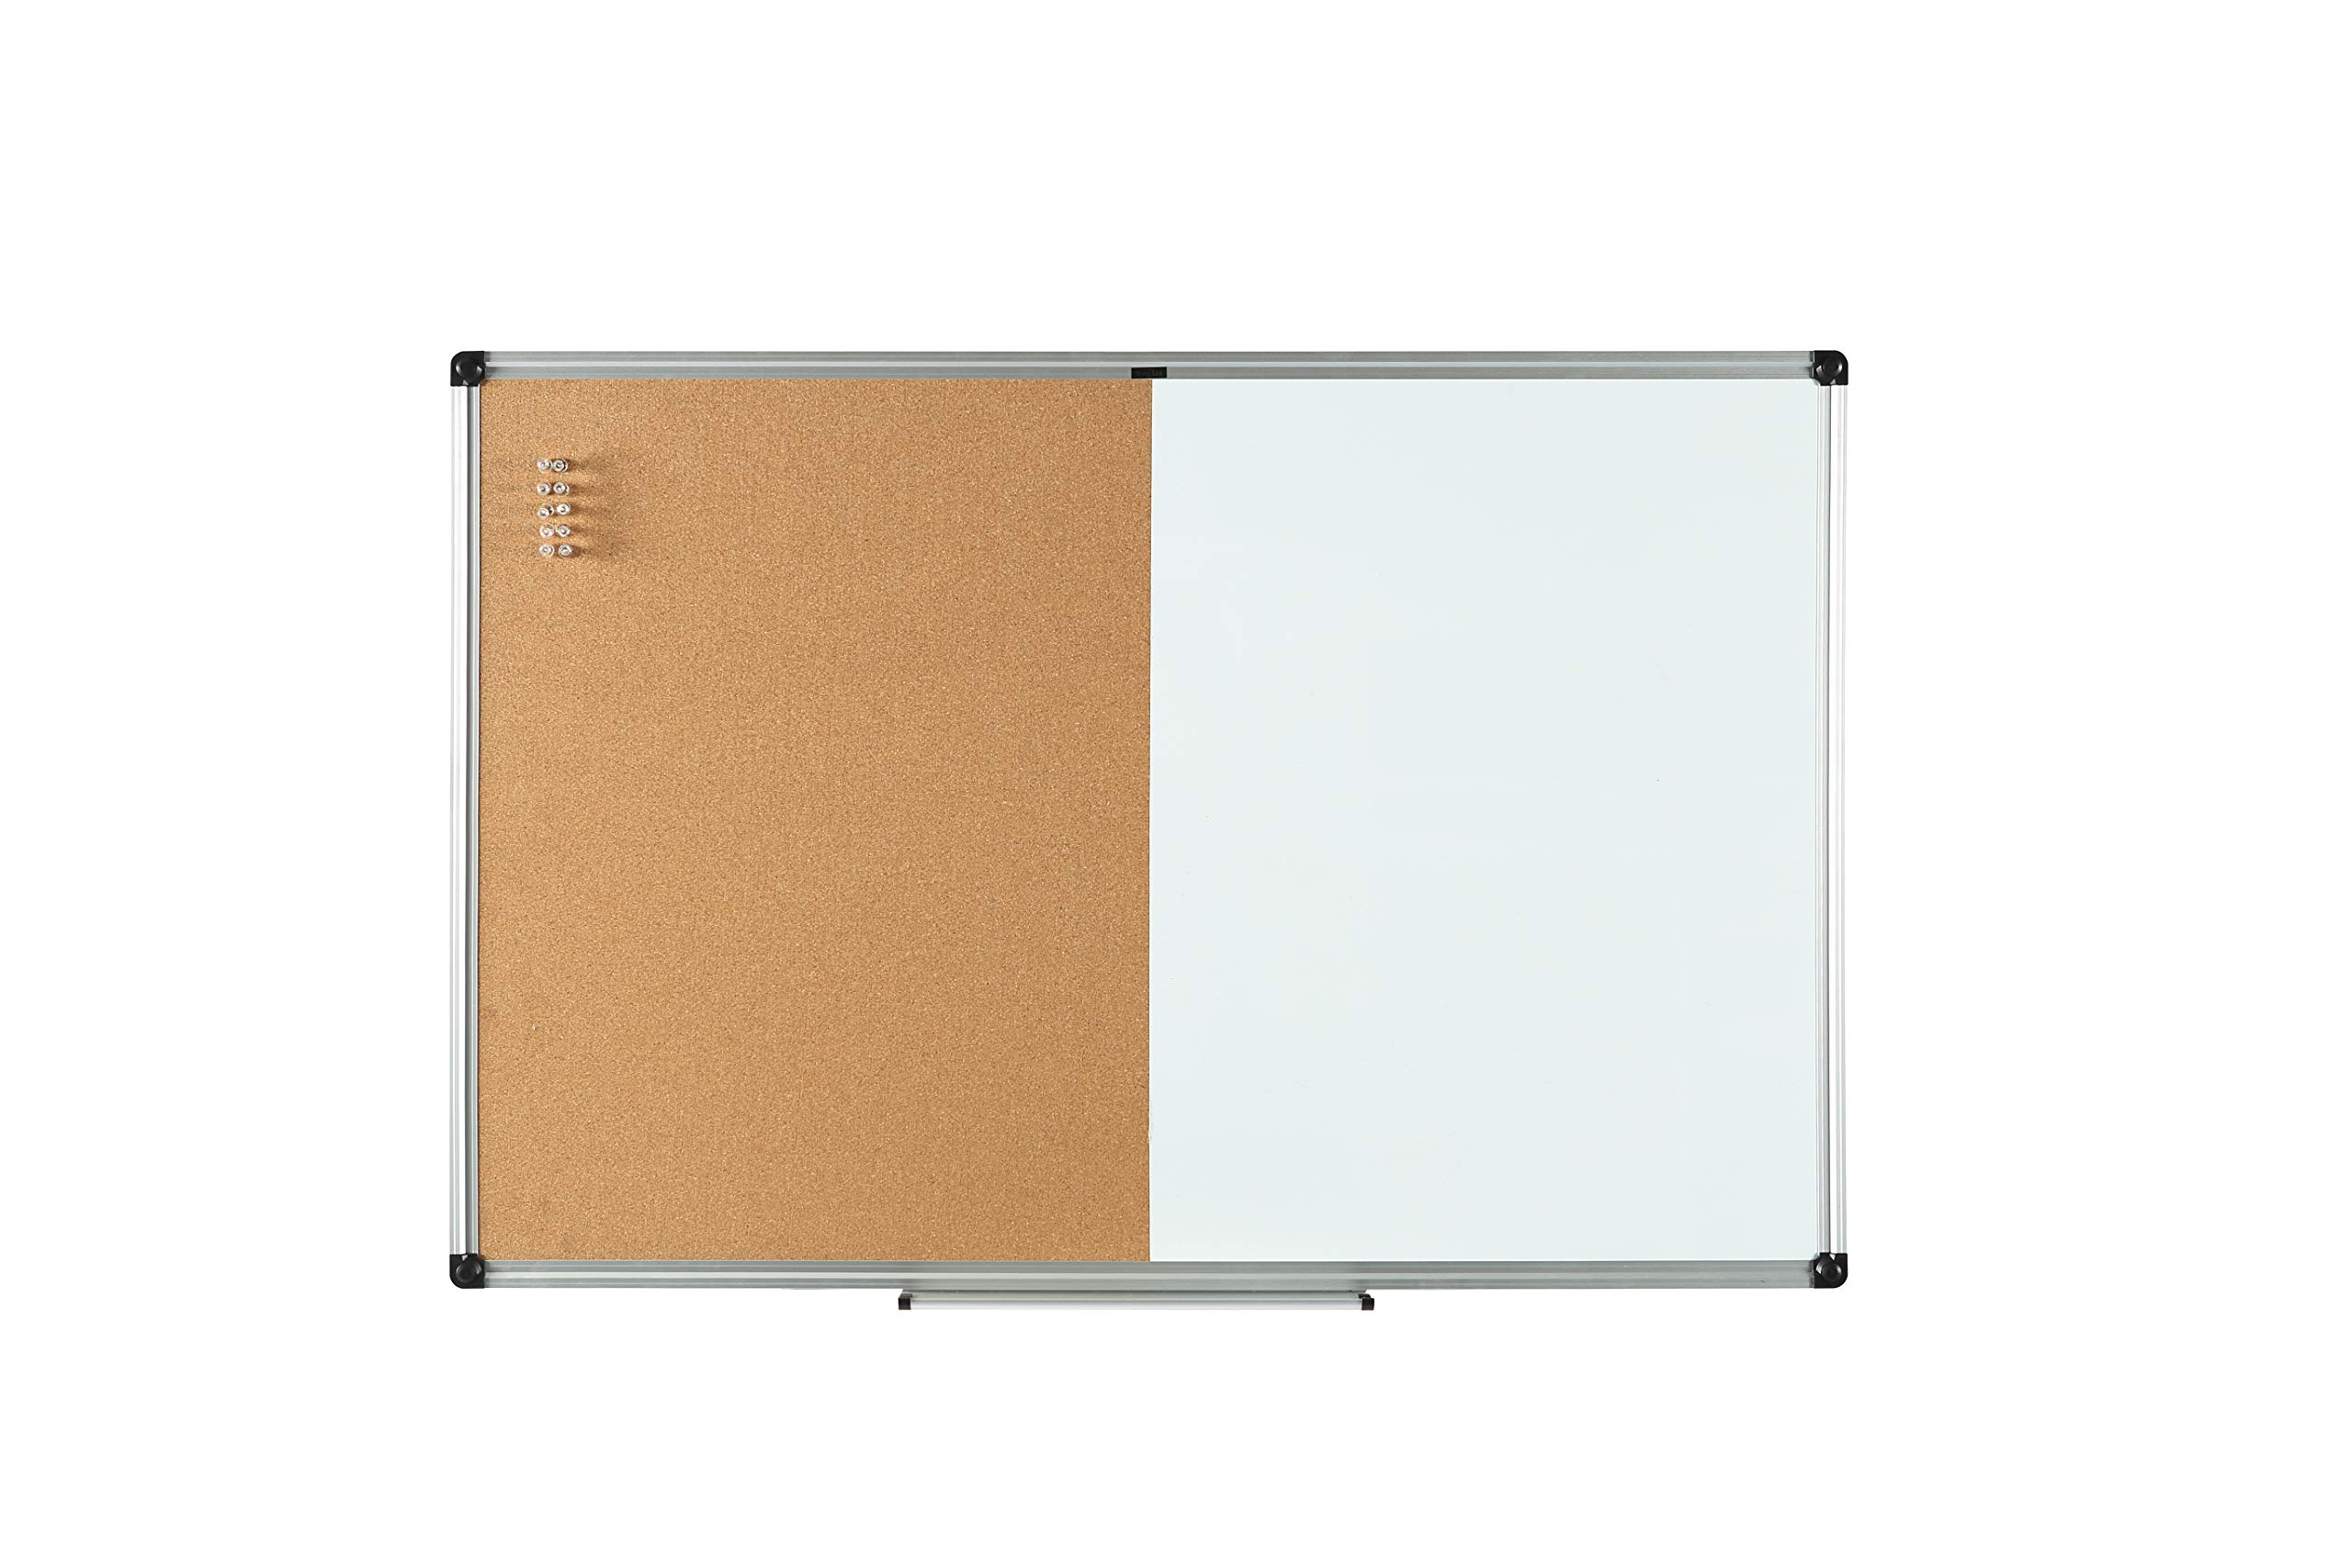 BOARD LINE Combination Board 48 X 36 Inches,Combo Whiteboard & Cork Board with Aluminum Frame, 10 Push Pins by BOARD LINE